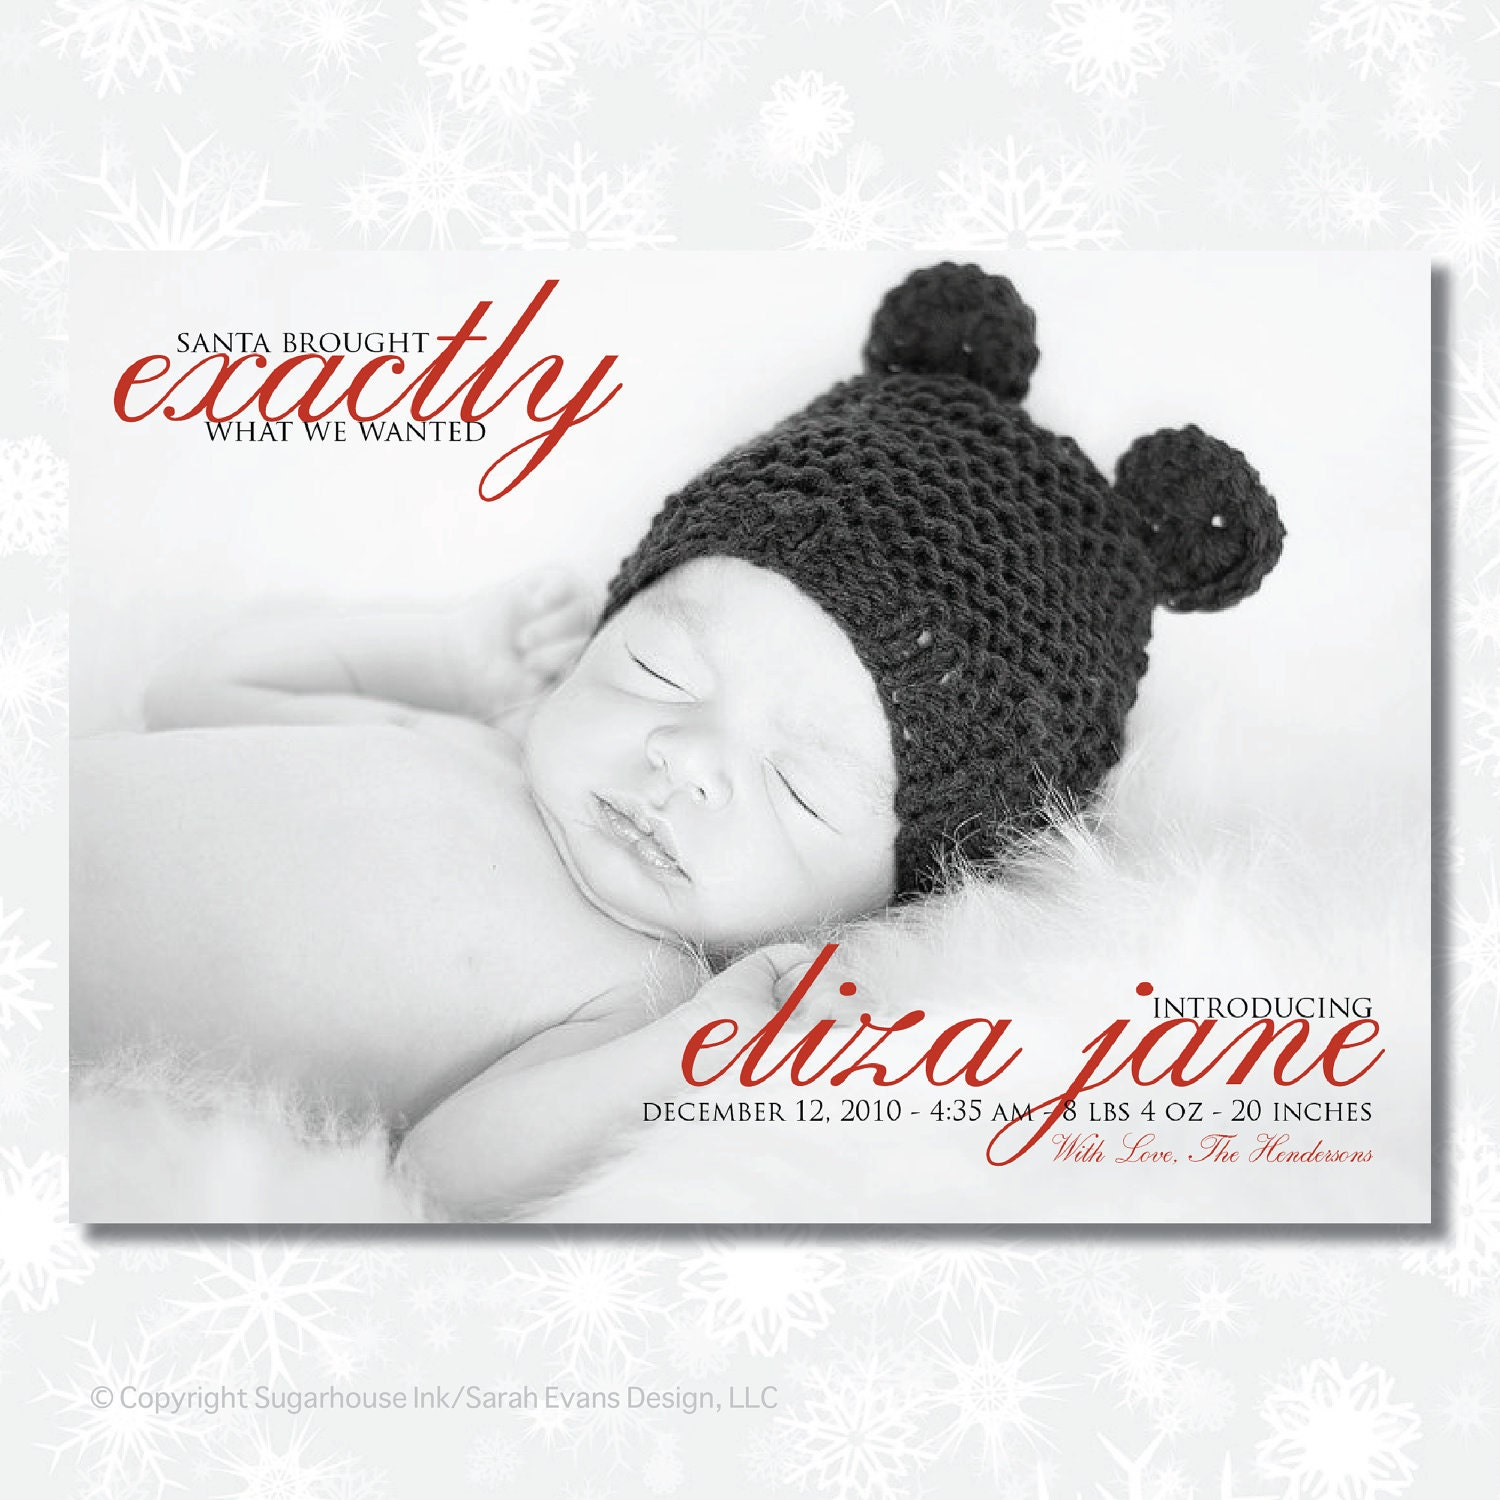 Christmas Birth Announcement Santa Brought Custom – Birth Announcement Christmas Cards